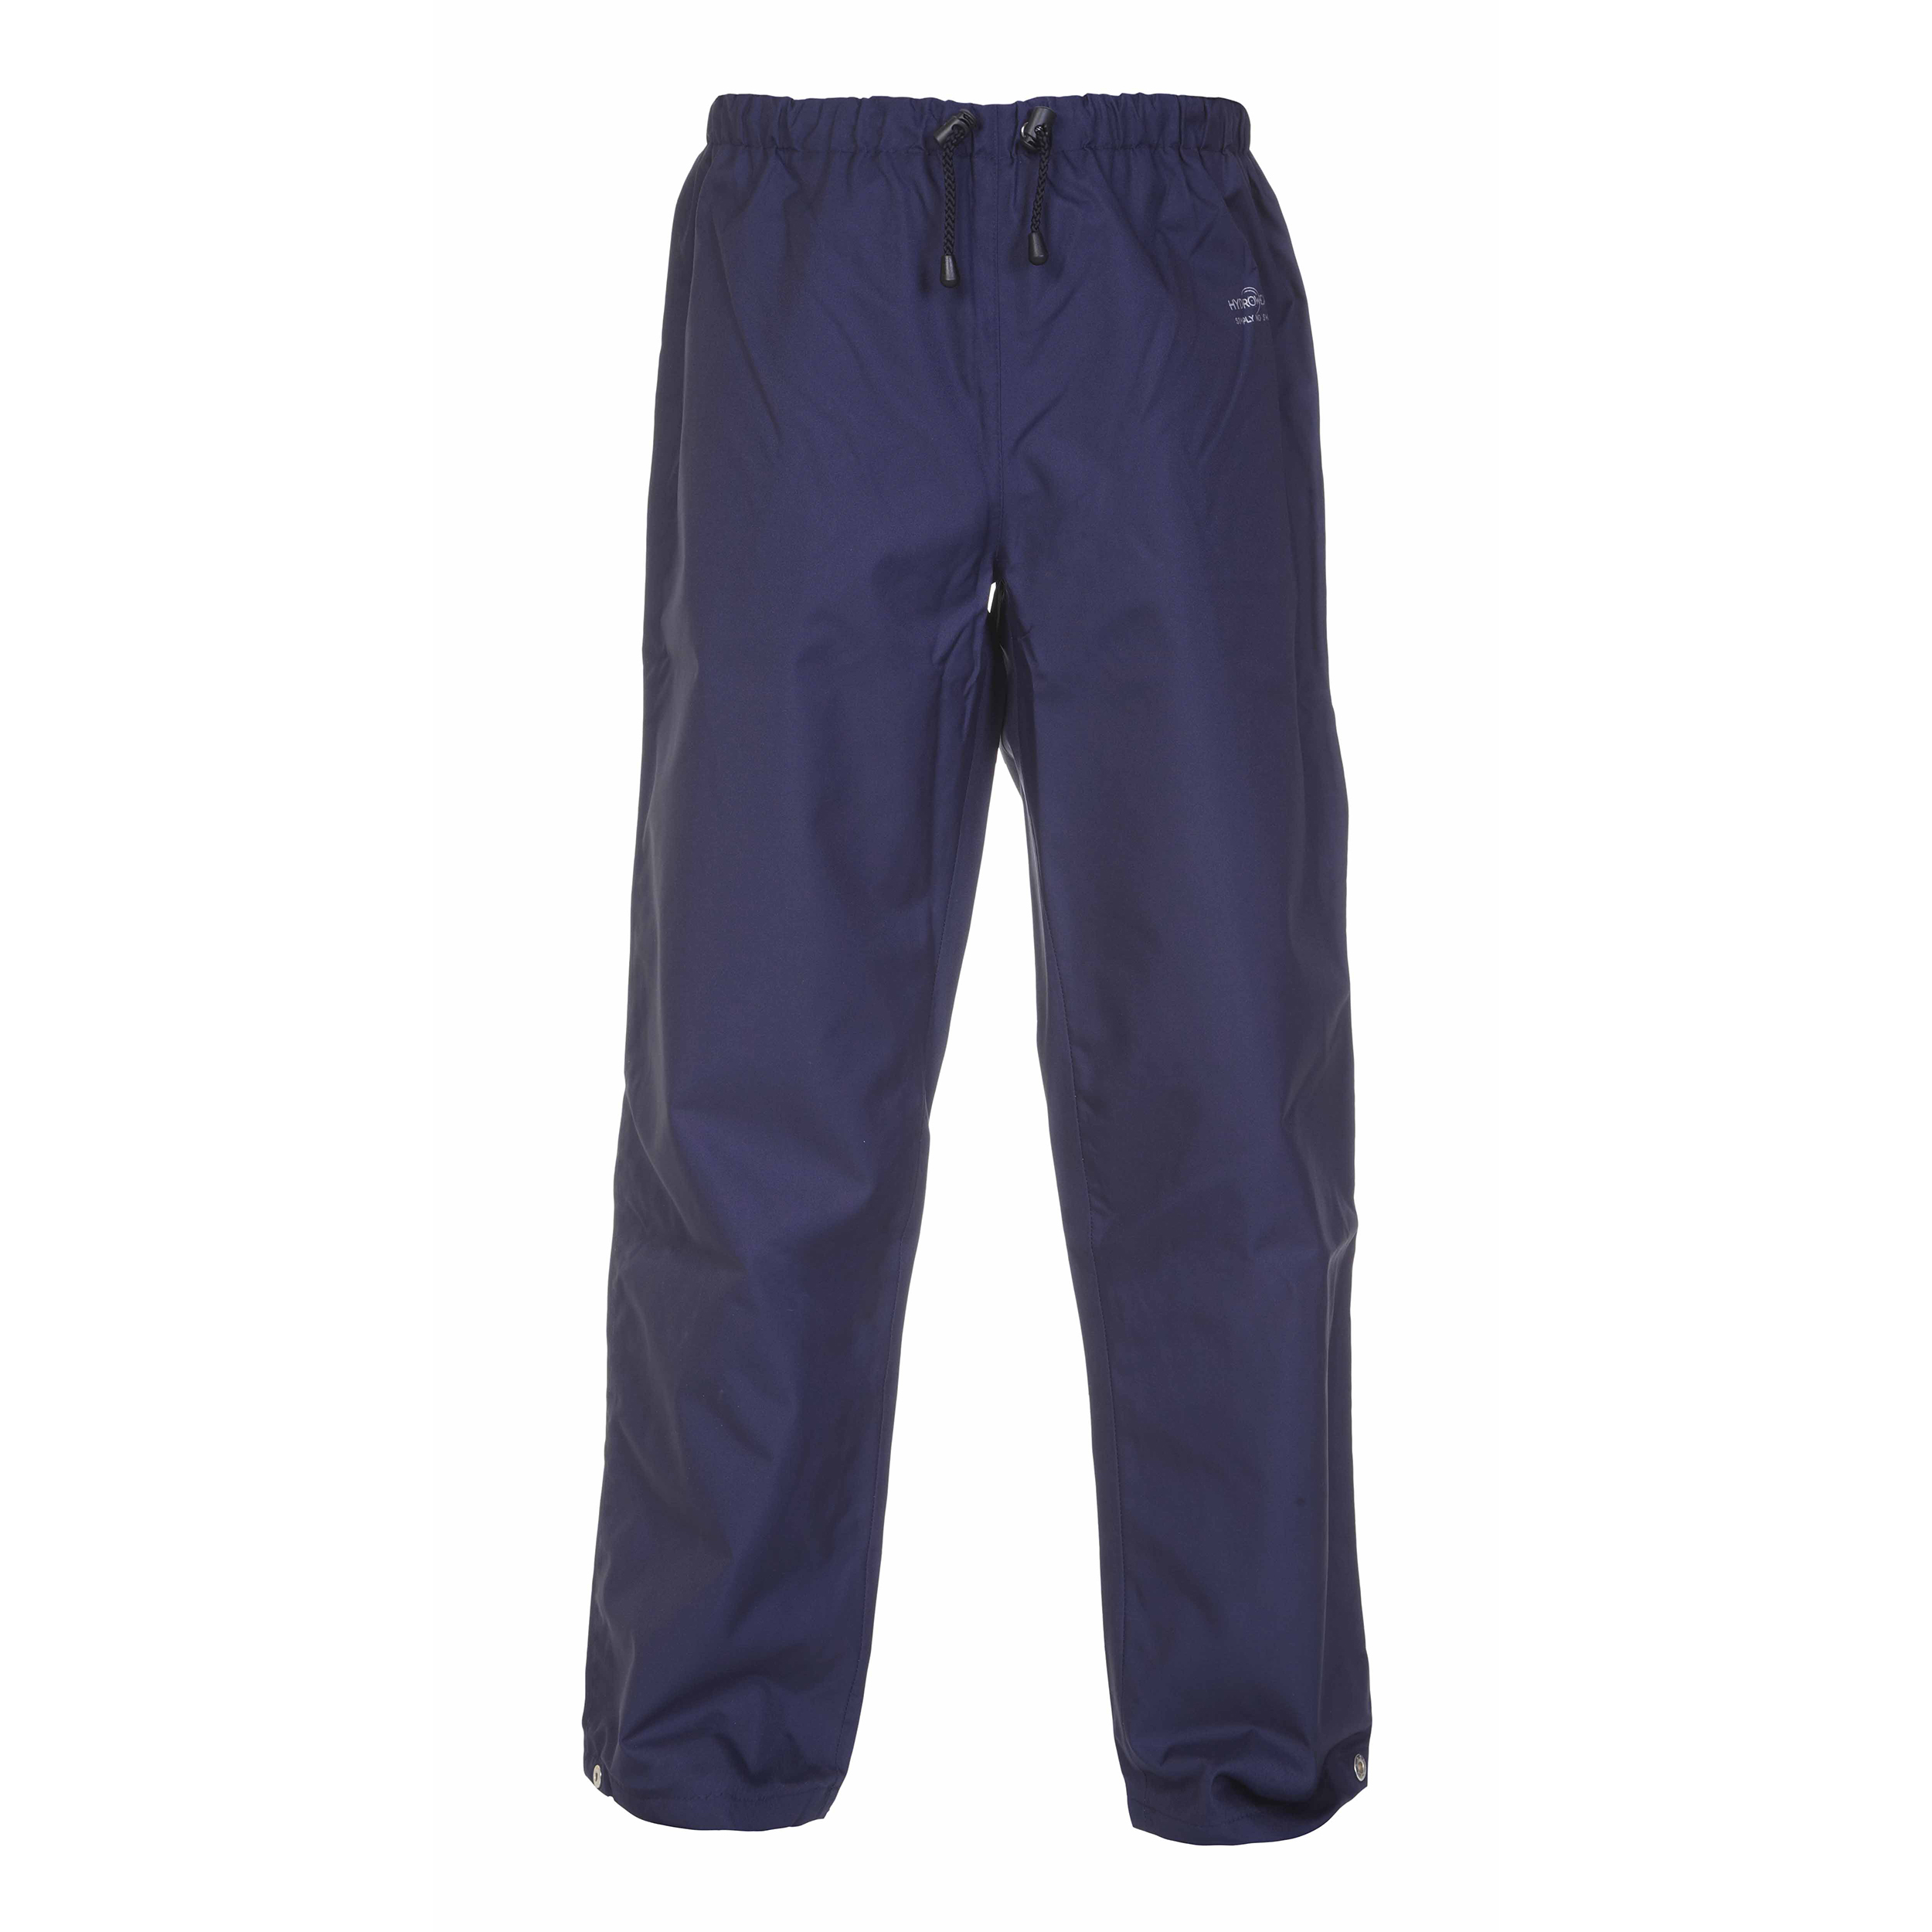 Hydowear Utrecht SNS Waterproof Trousers Meduim Navy Ref HYD072350NM Up to 3 Day Leadtime